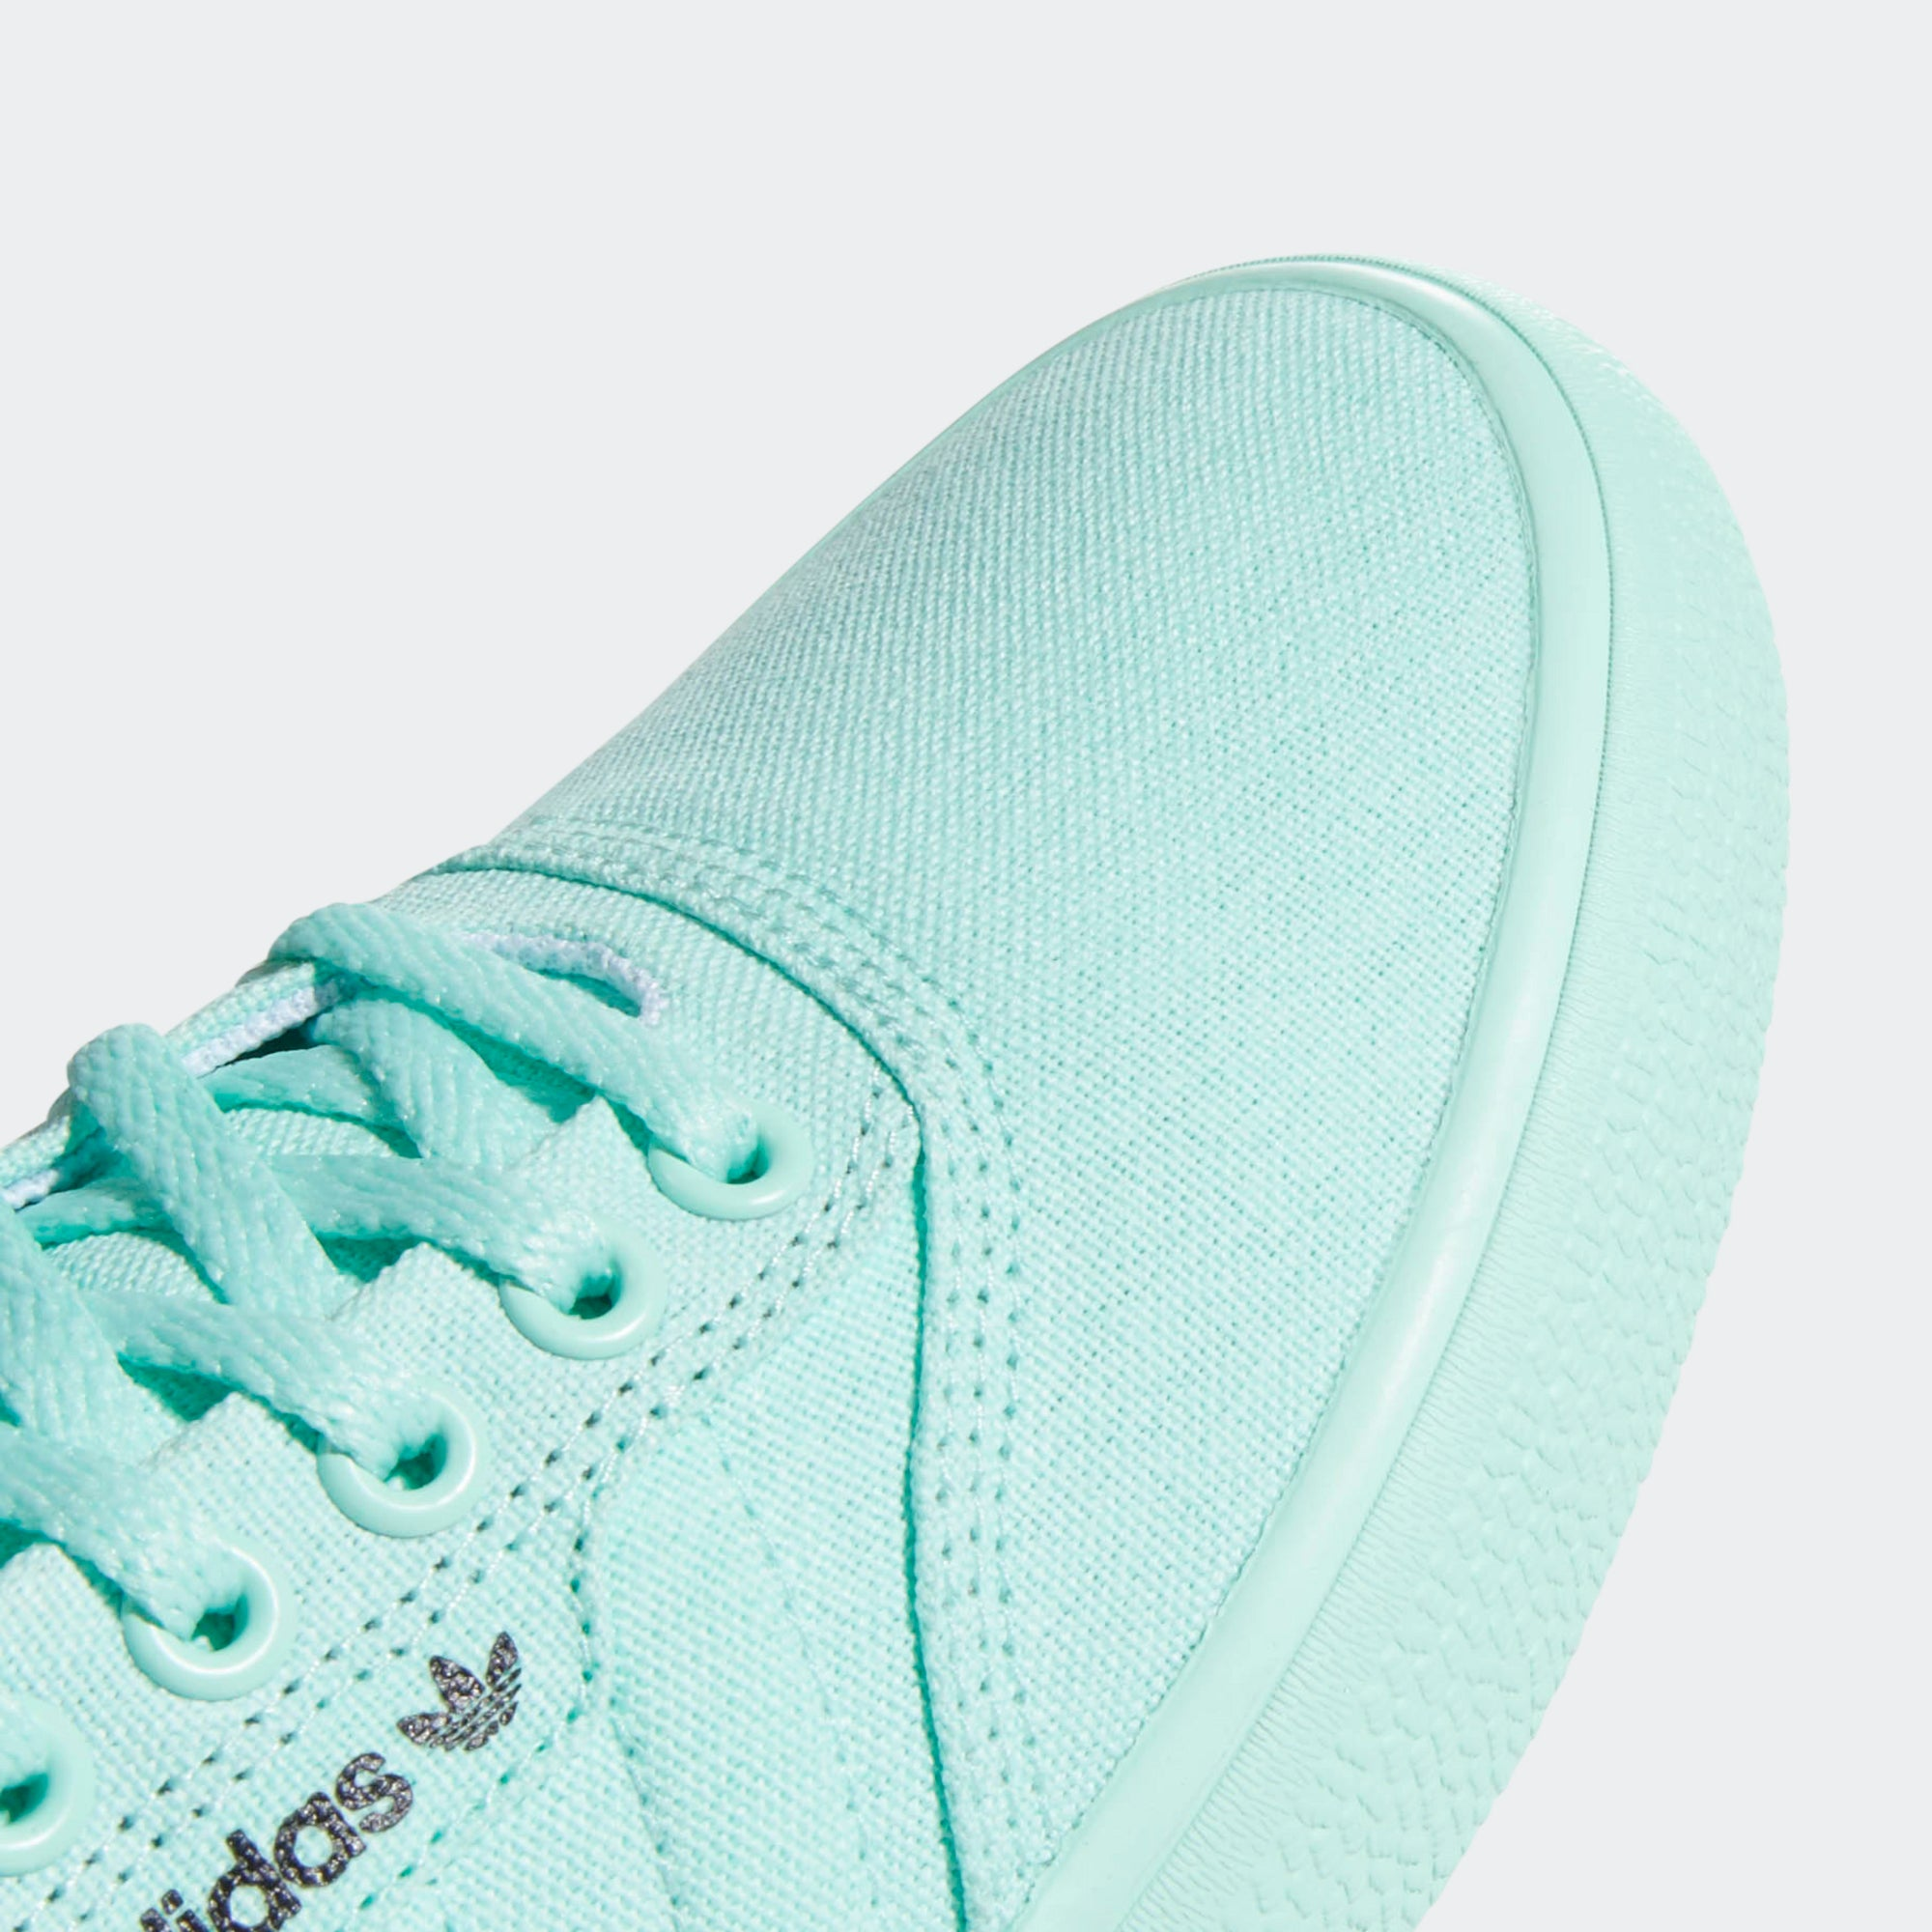 Men s adidas Originals 3MC Vulc Shoes Clear Mint. 1 7ab4bd87d